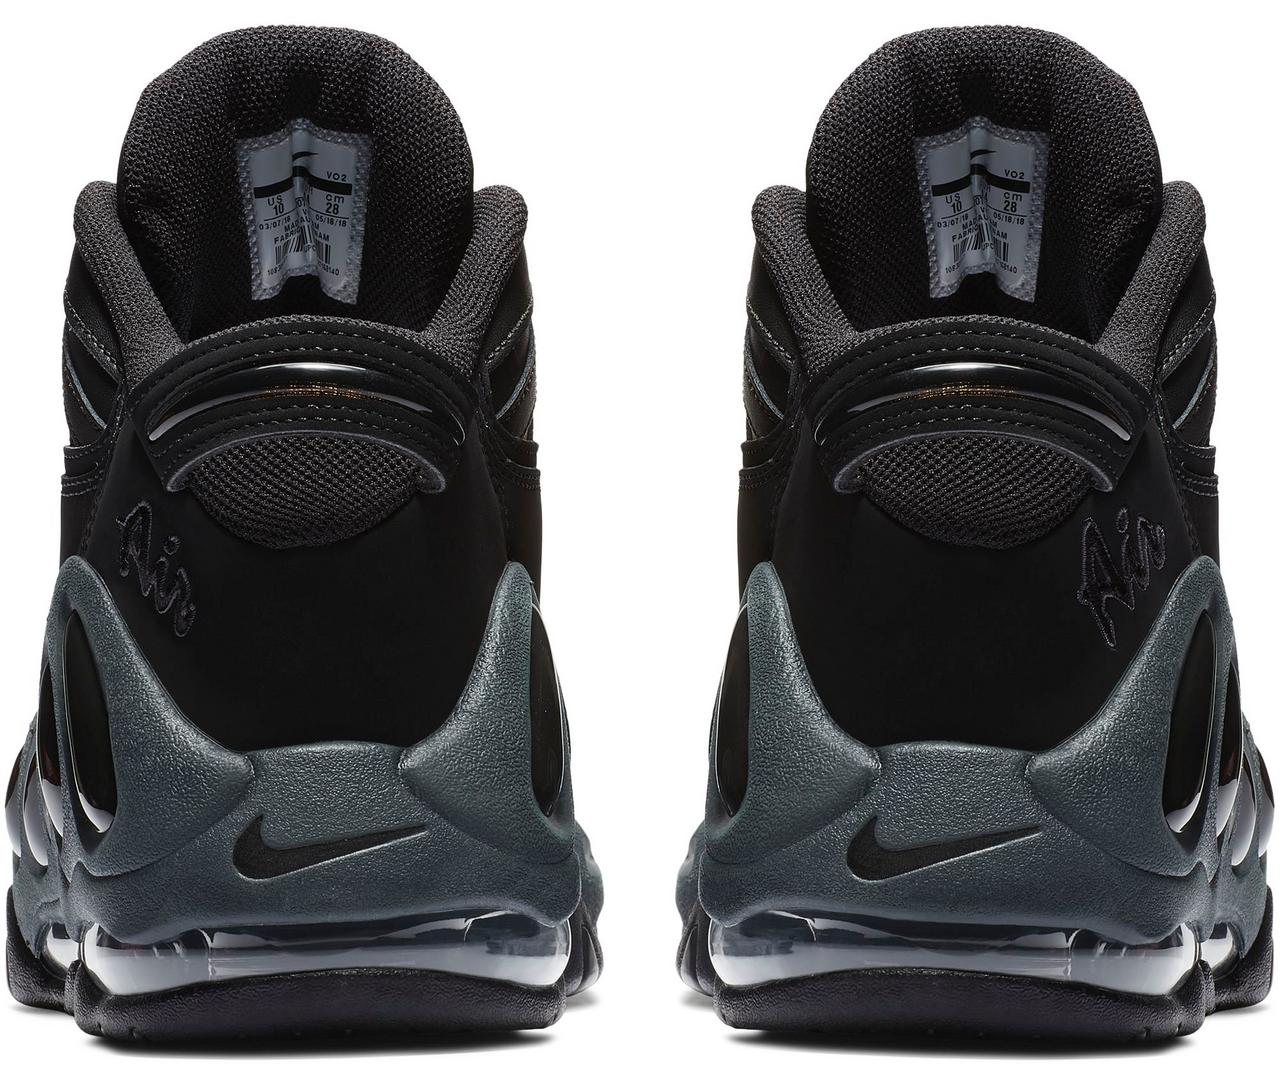 finest selection 6ca20 46749 Sneaker Release: Men's Nike Air Max Uptempo '97 Basketball Shoe